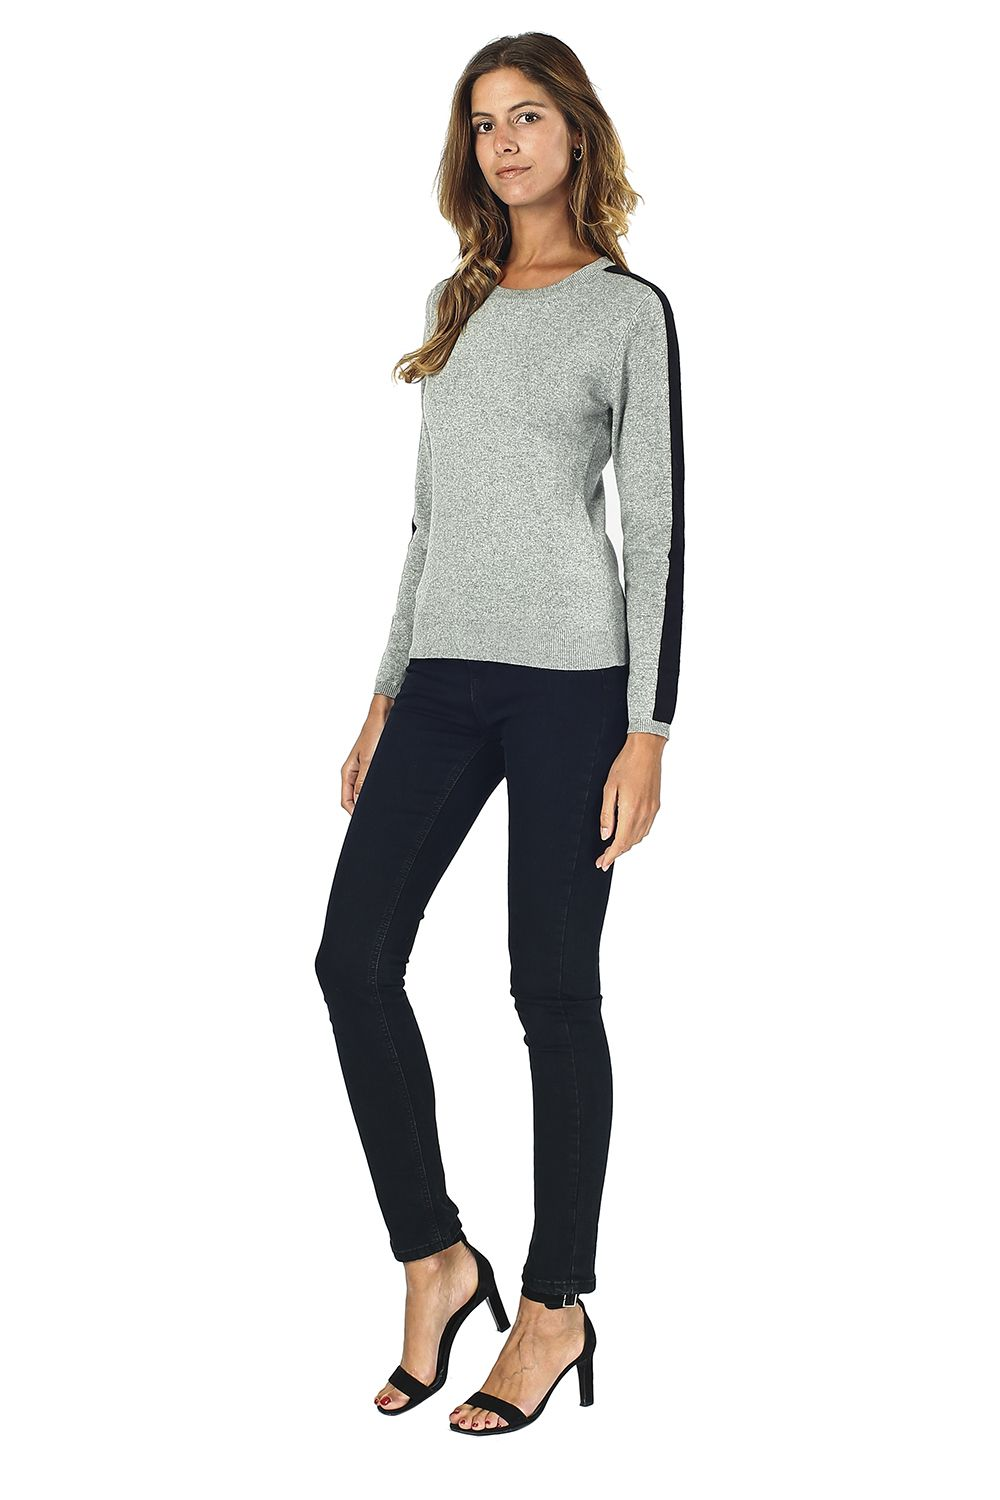 William De Faye Round Neck Sweater with Two-tone Sleeves in Grey